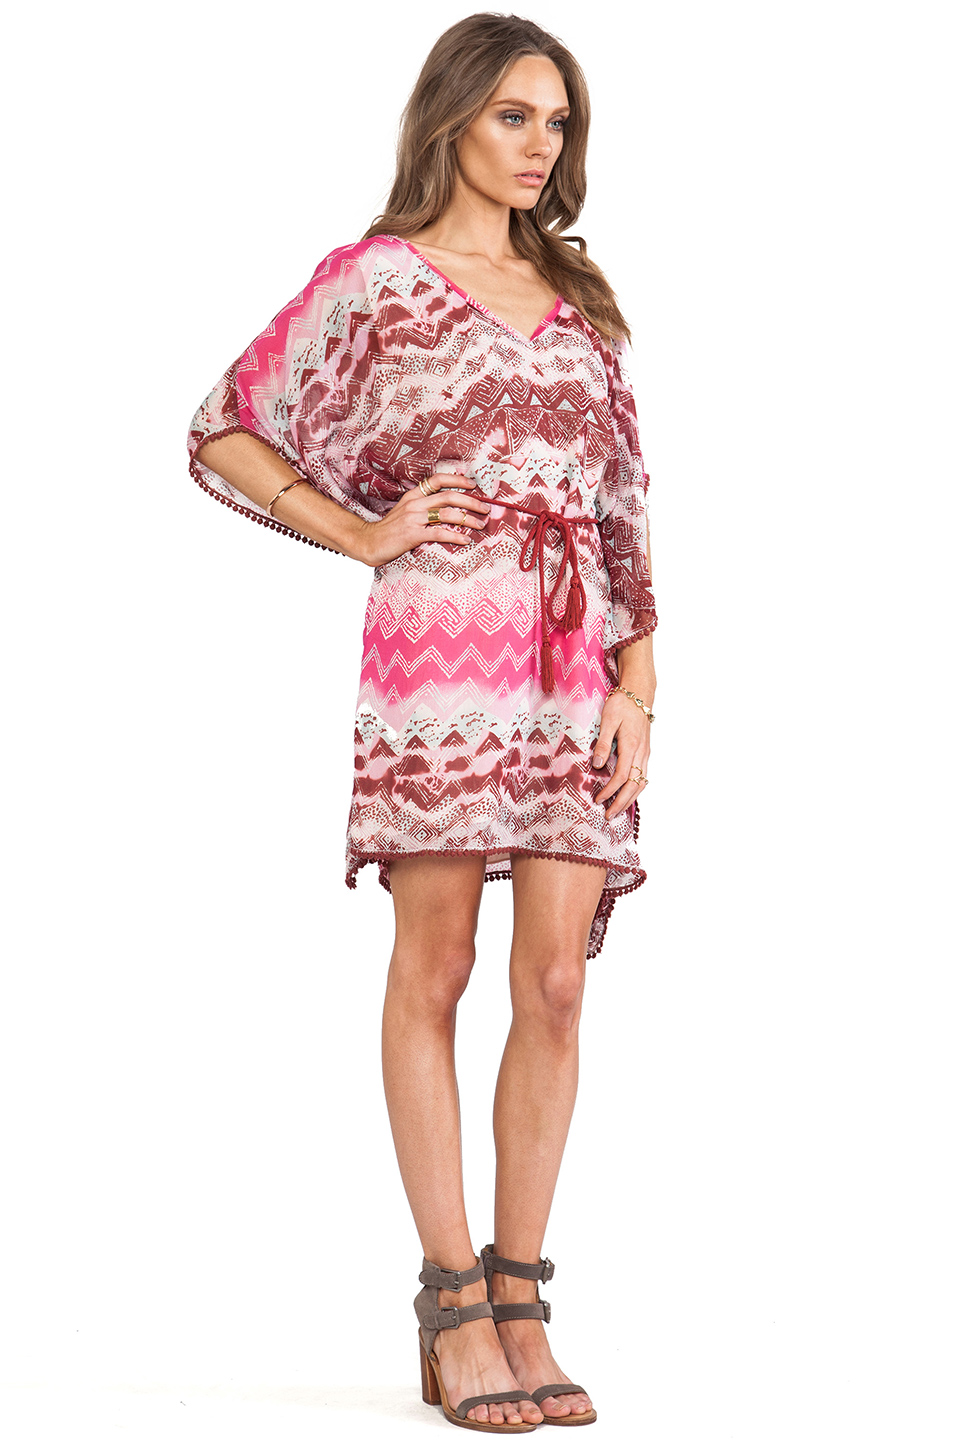 Look perfectly resort chic in the Tribal Caftan Dress by LAmade